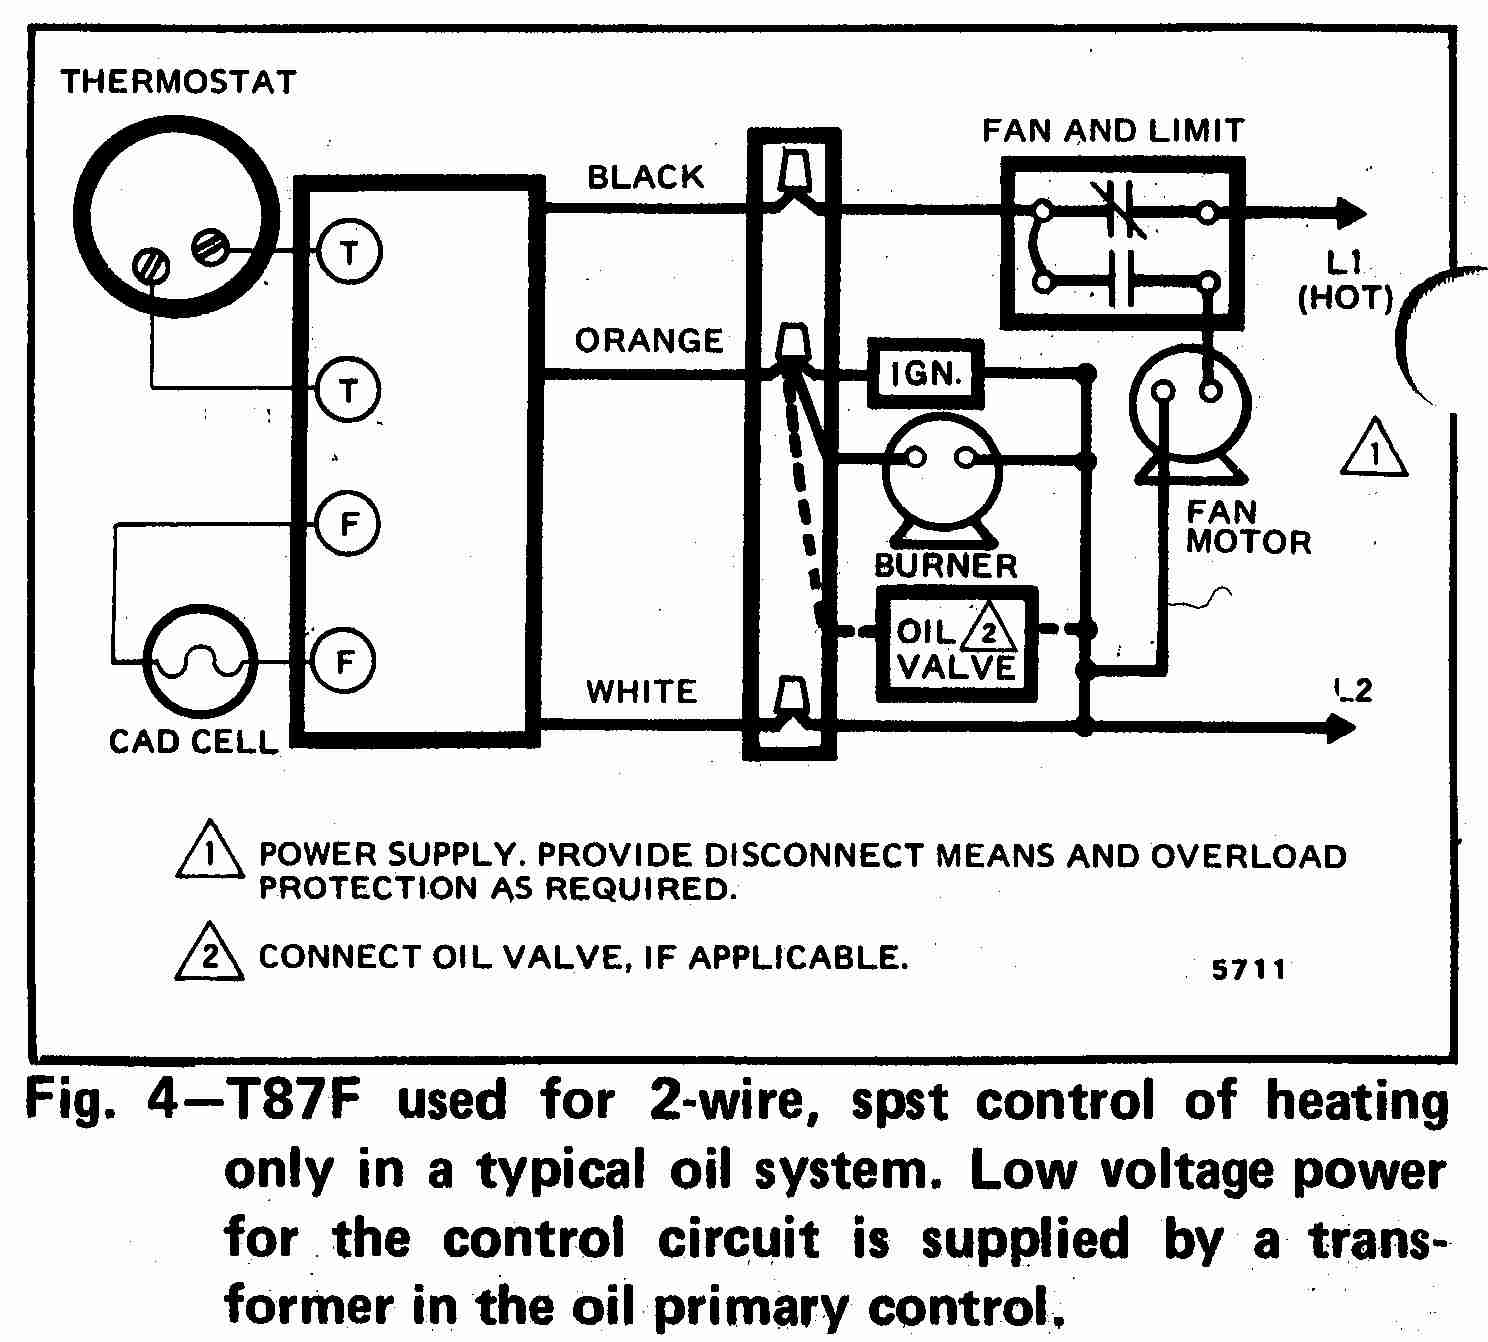 TT_T87F_0002_2W_DJF room thermostat wiring diagrams for hvac systems furnace wiring diagrams at bakdesigns.co